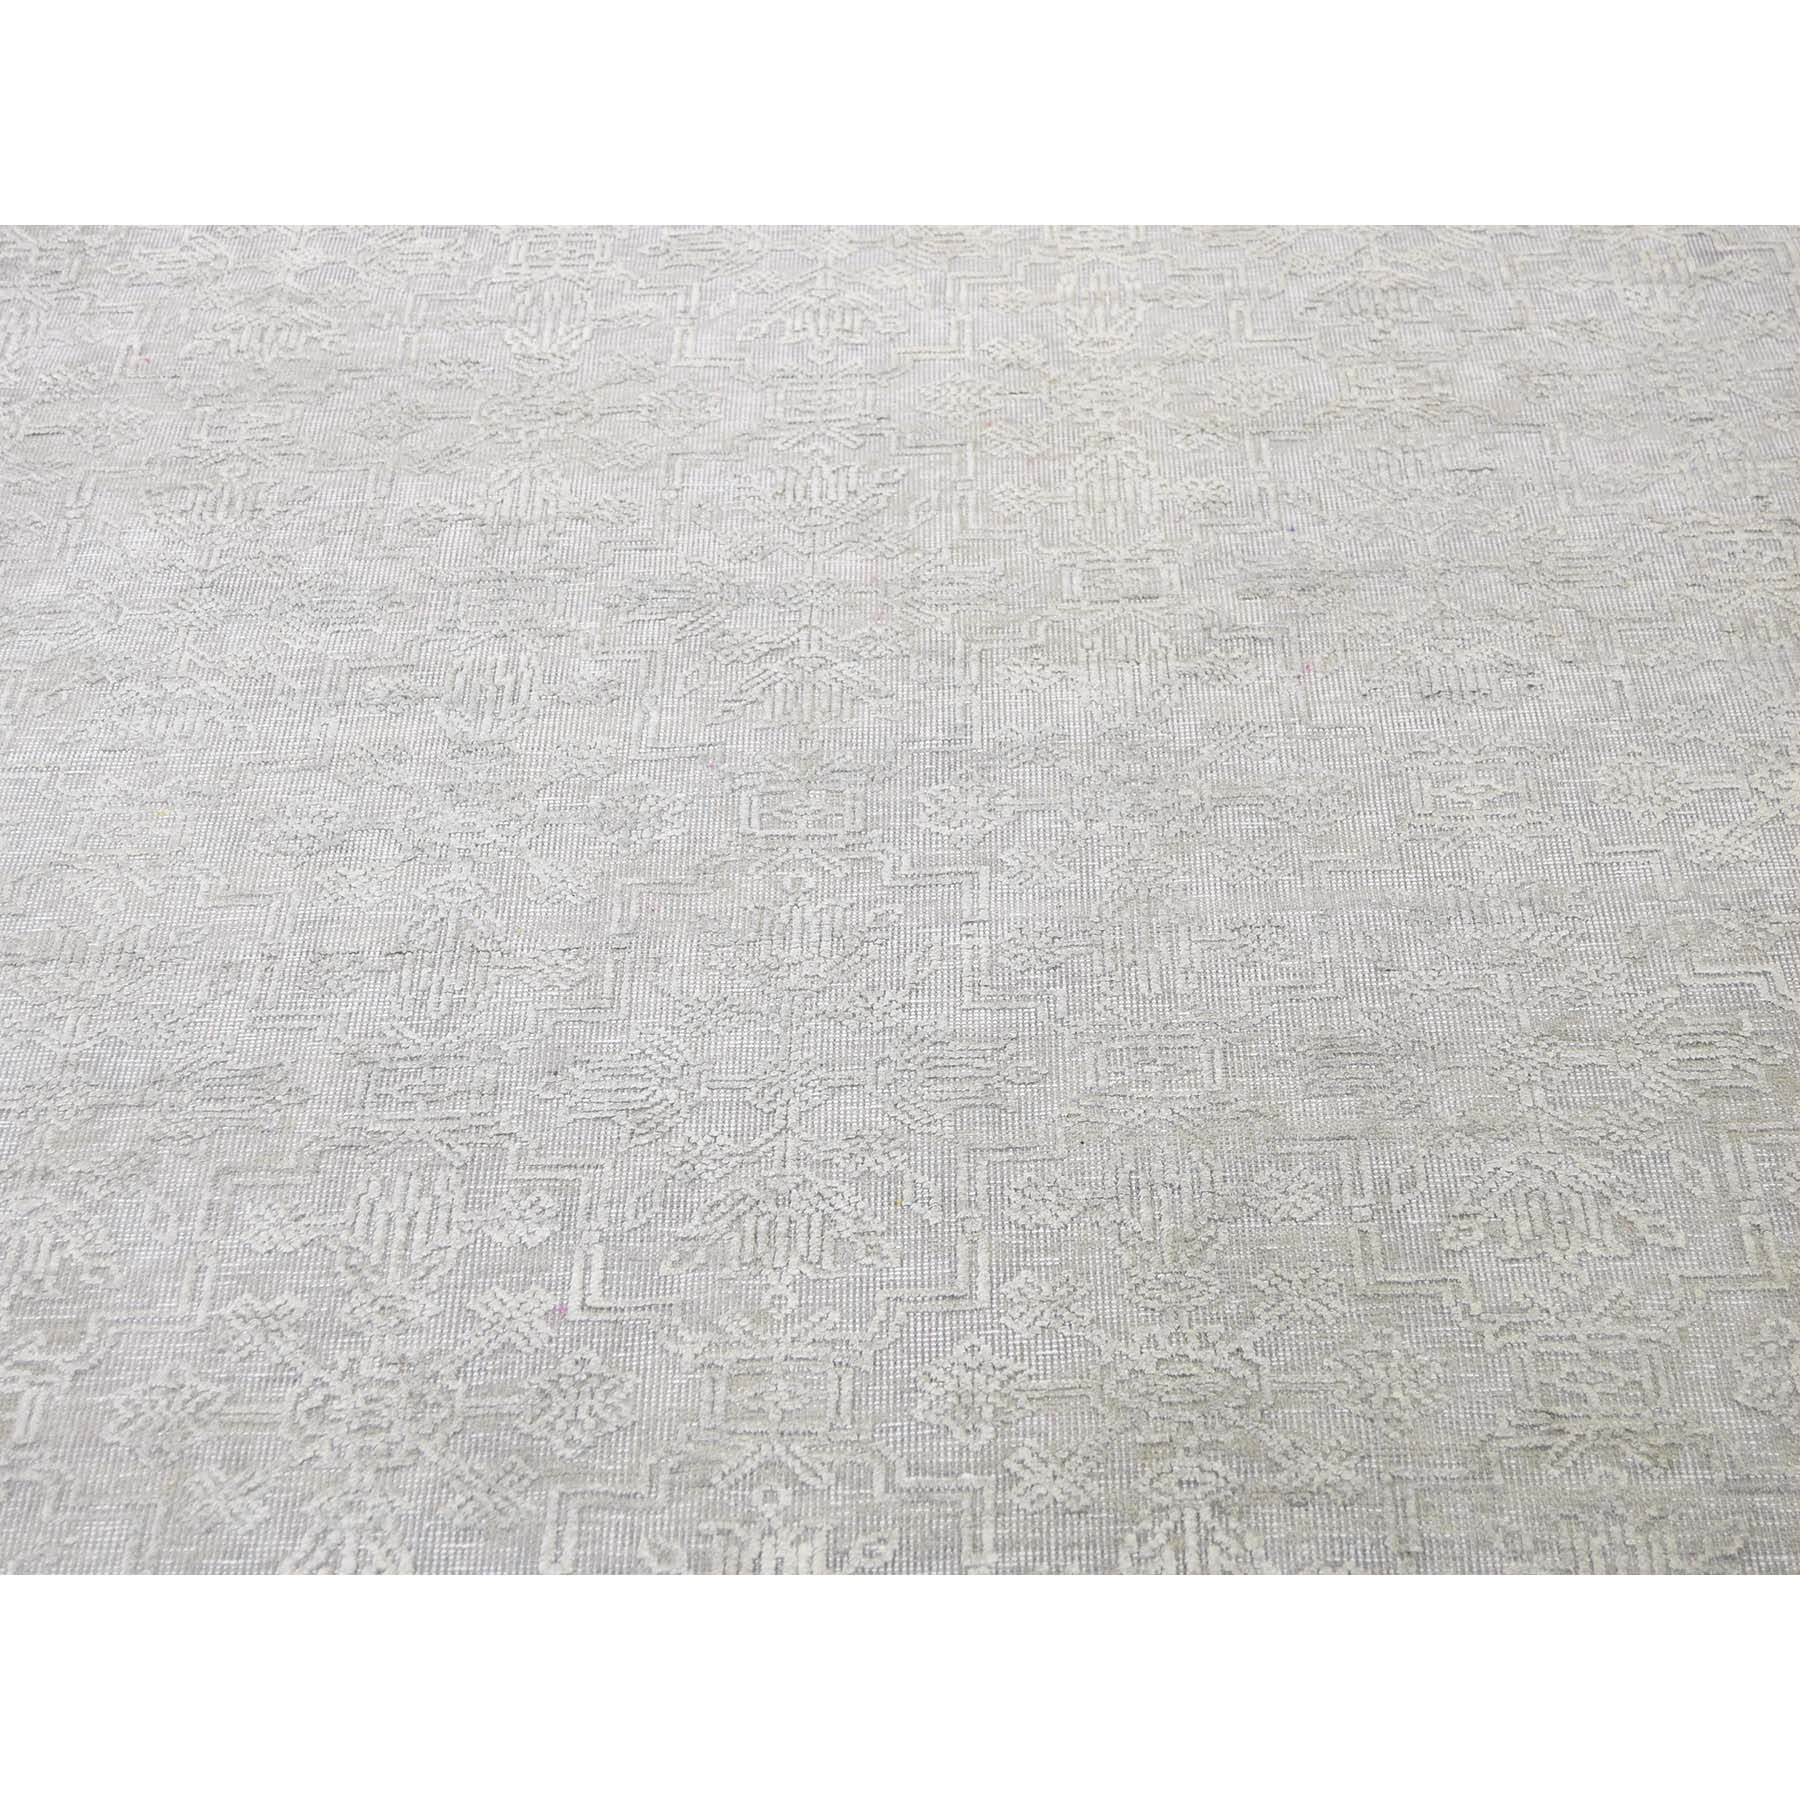 8-10 x12- Tone on Tone Silk with Oxidized Wool Hand-Knotted Oriental Rug